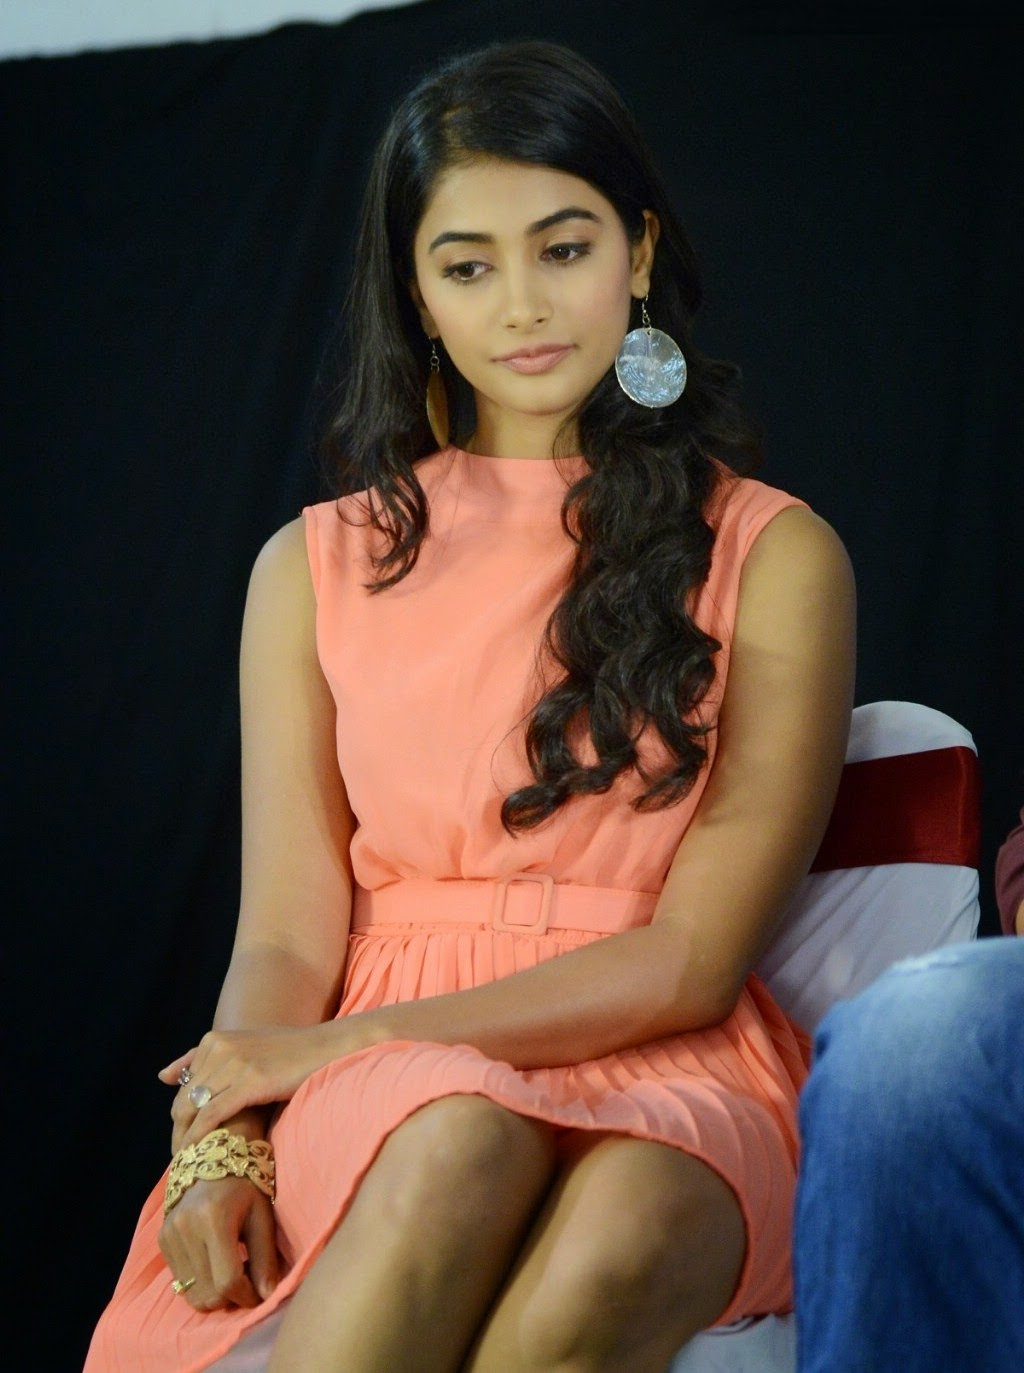 11 Best Pooja Unit Images On Pinterest: High Quality Bollywood Celebrity Pictures: Pooja Hegde